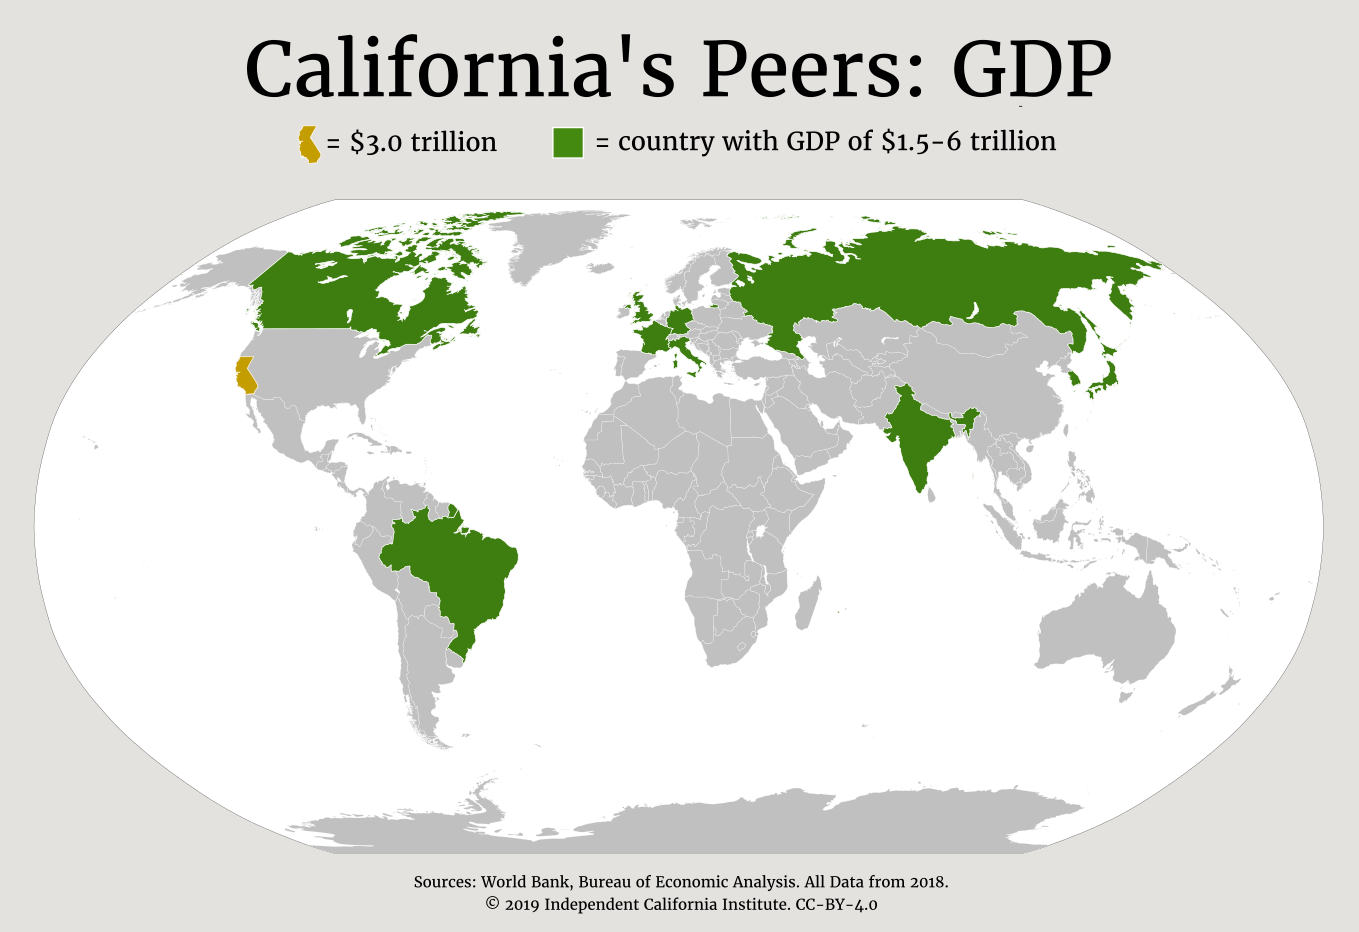 californias-peers-gdp-1-2770298